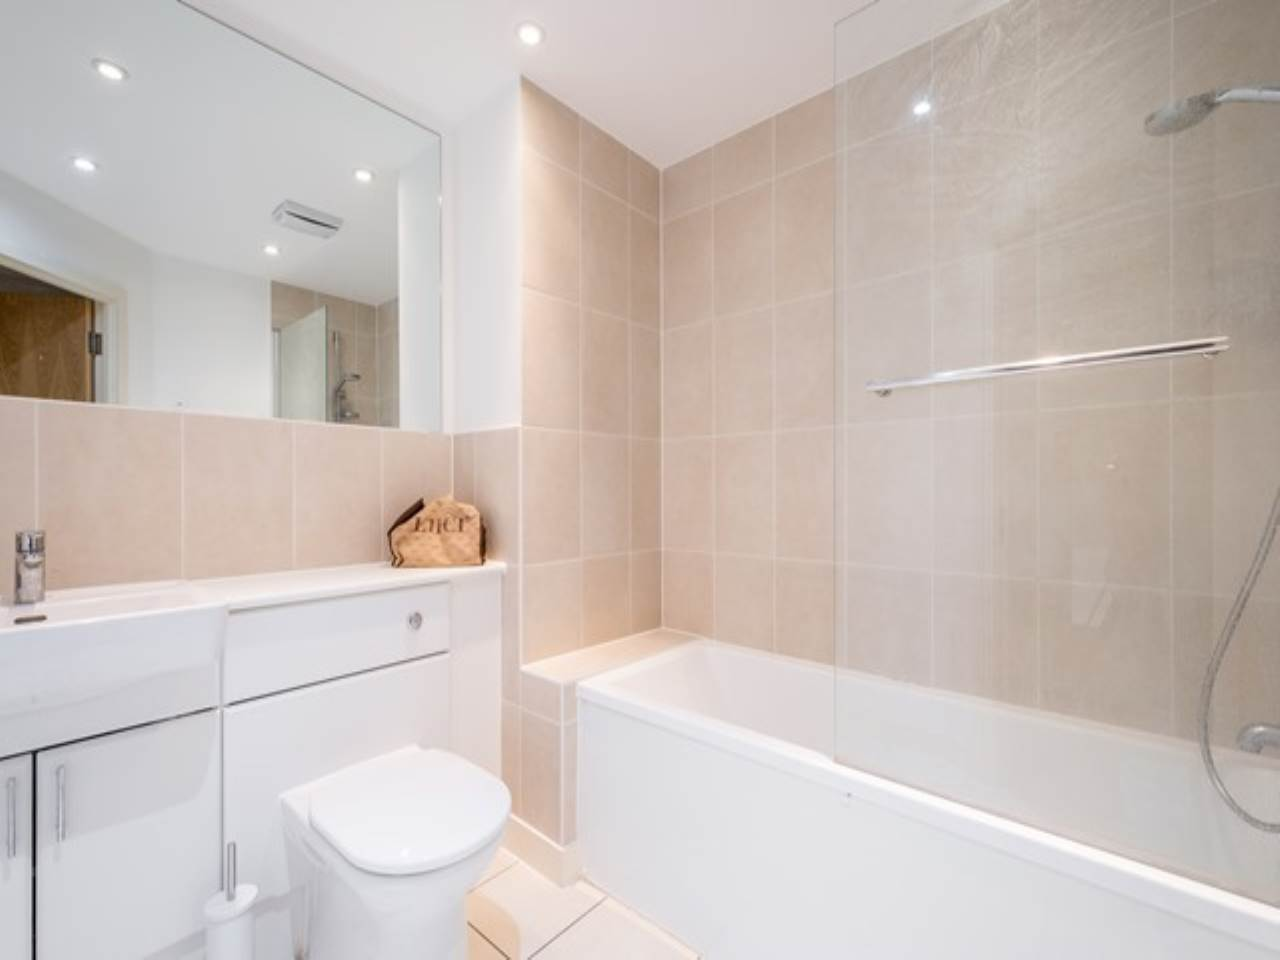 2 bed flat for sale in Fathom Court, 2 Basin Approach  - Property Image 6